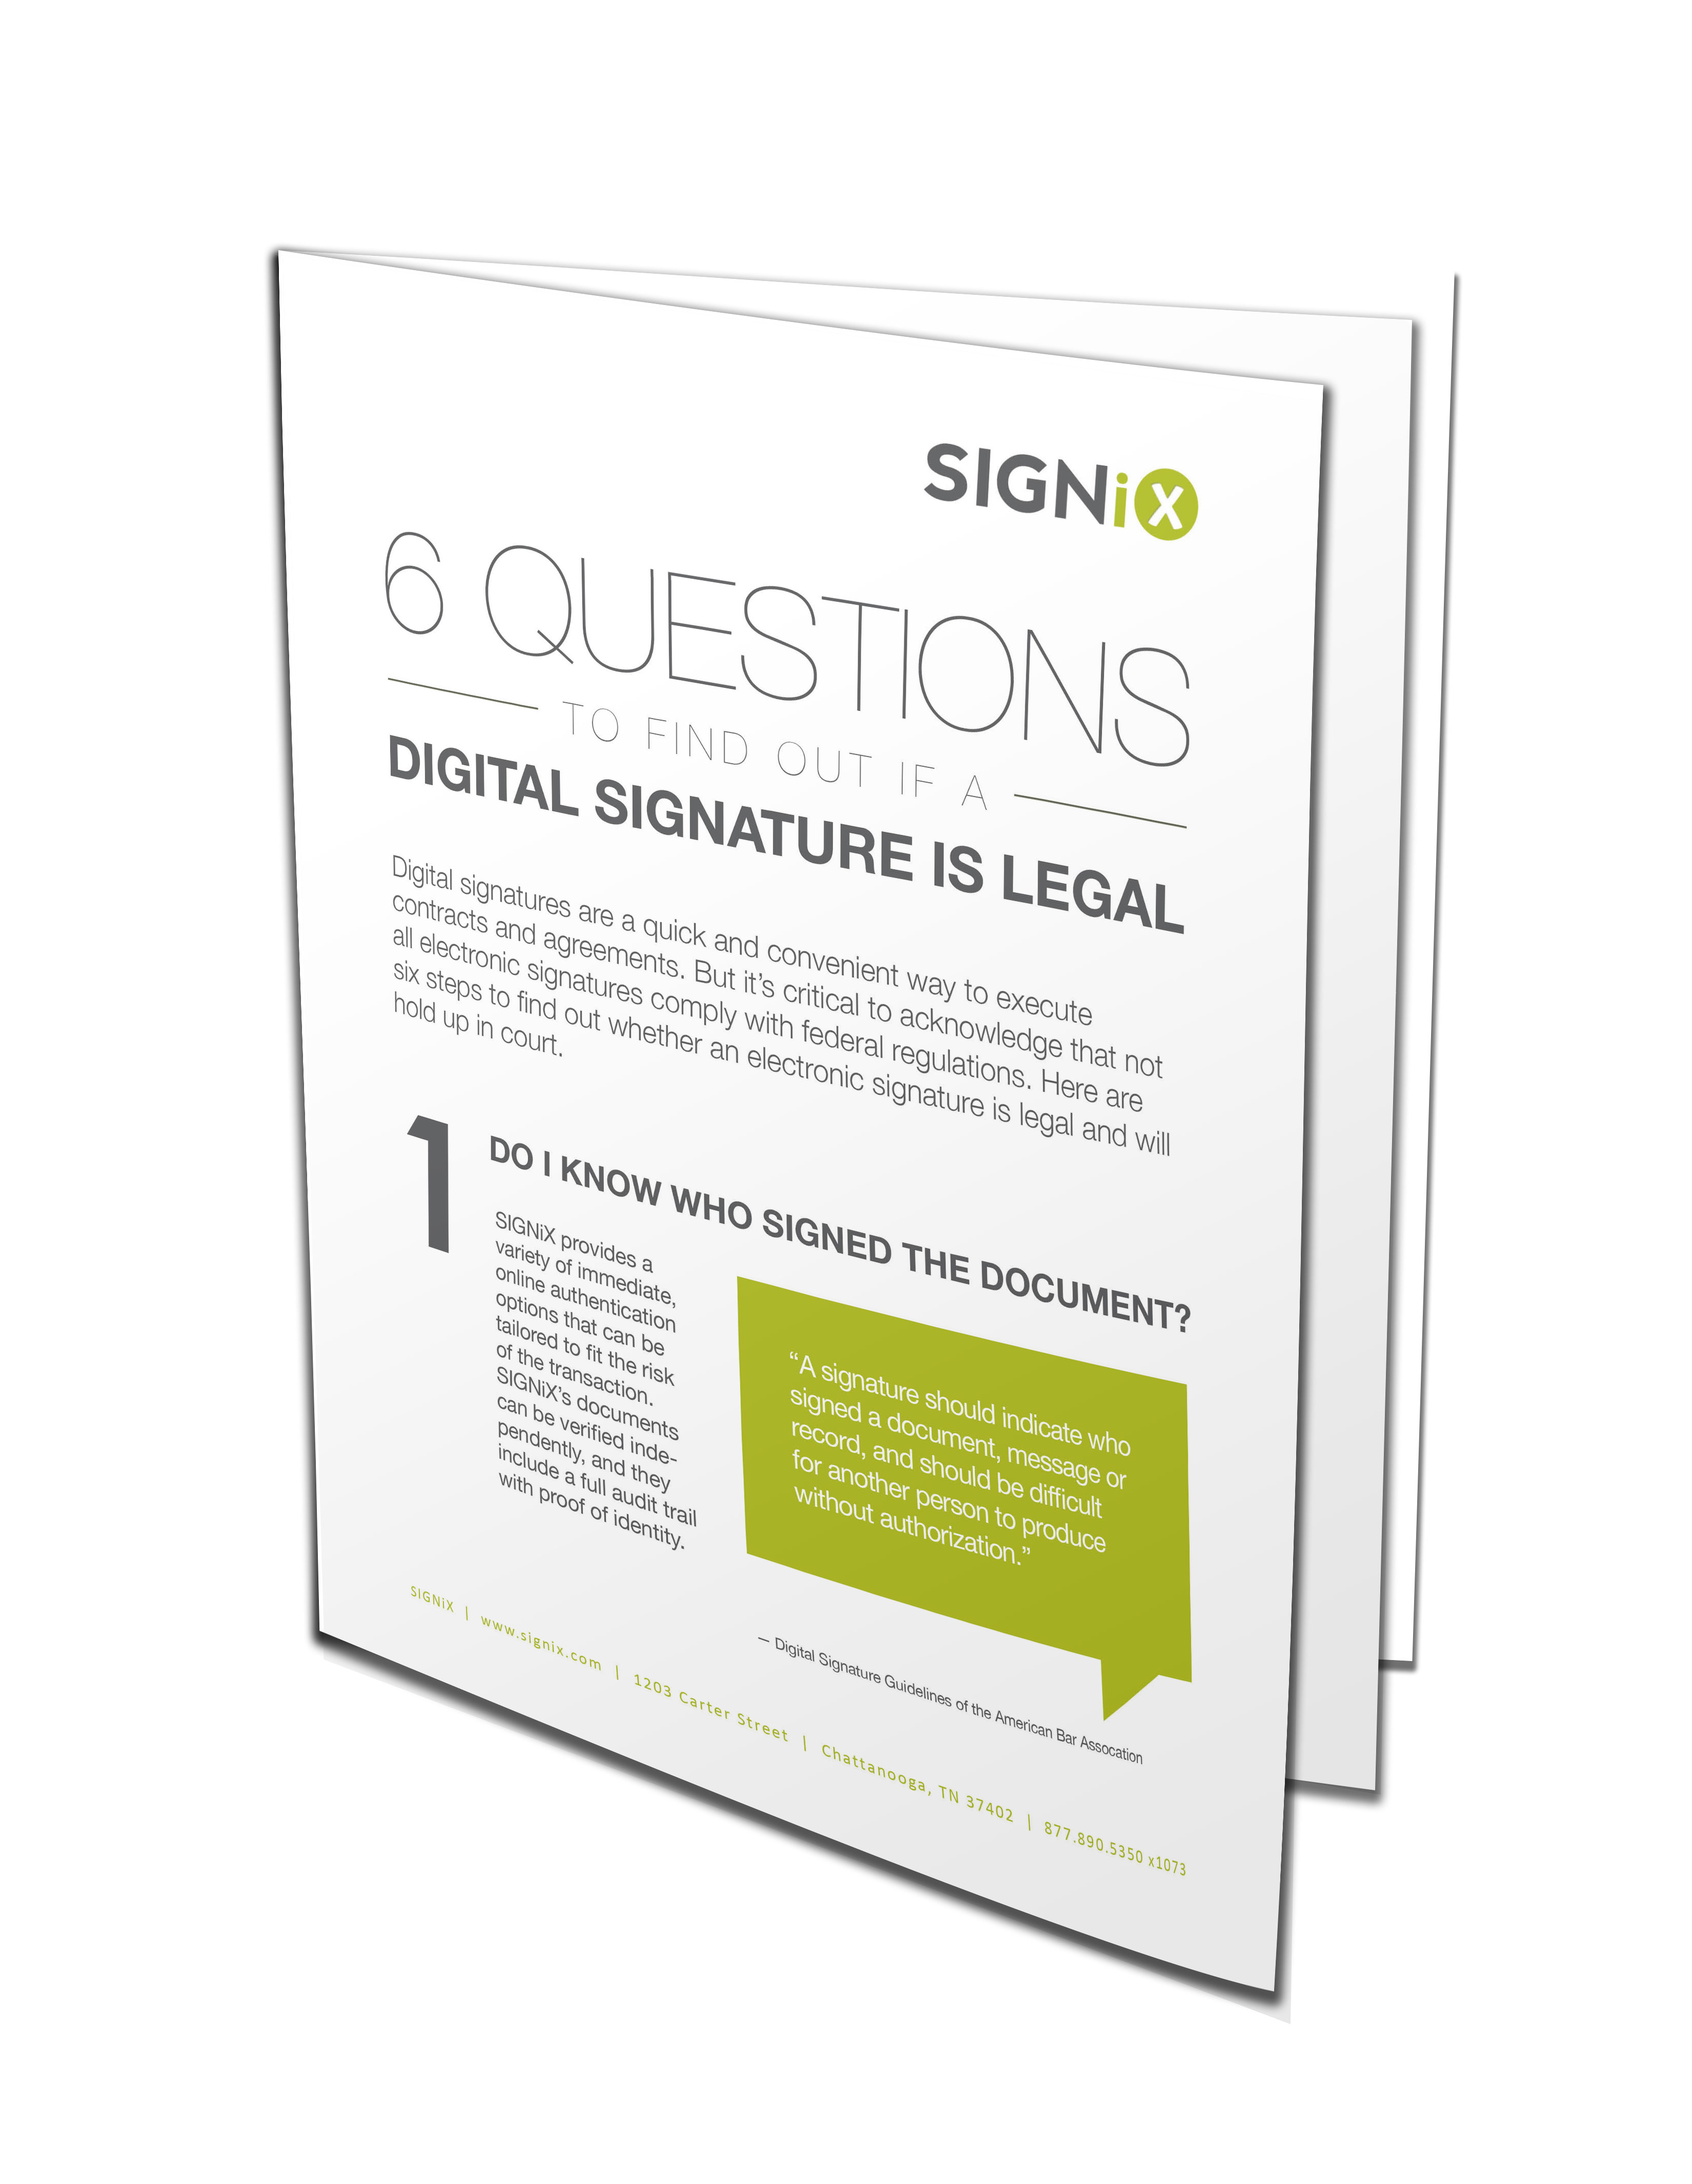 what makes a digital signature legal